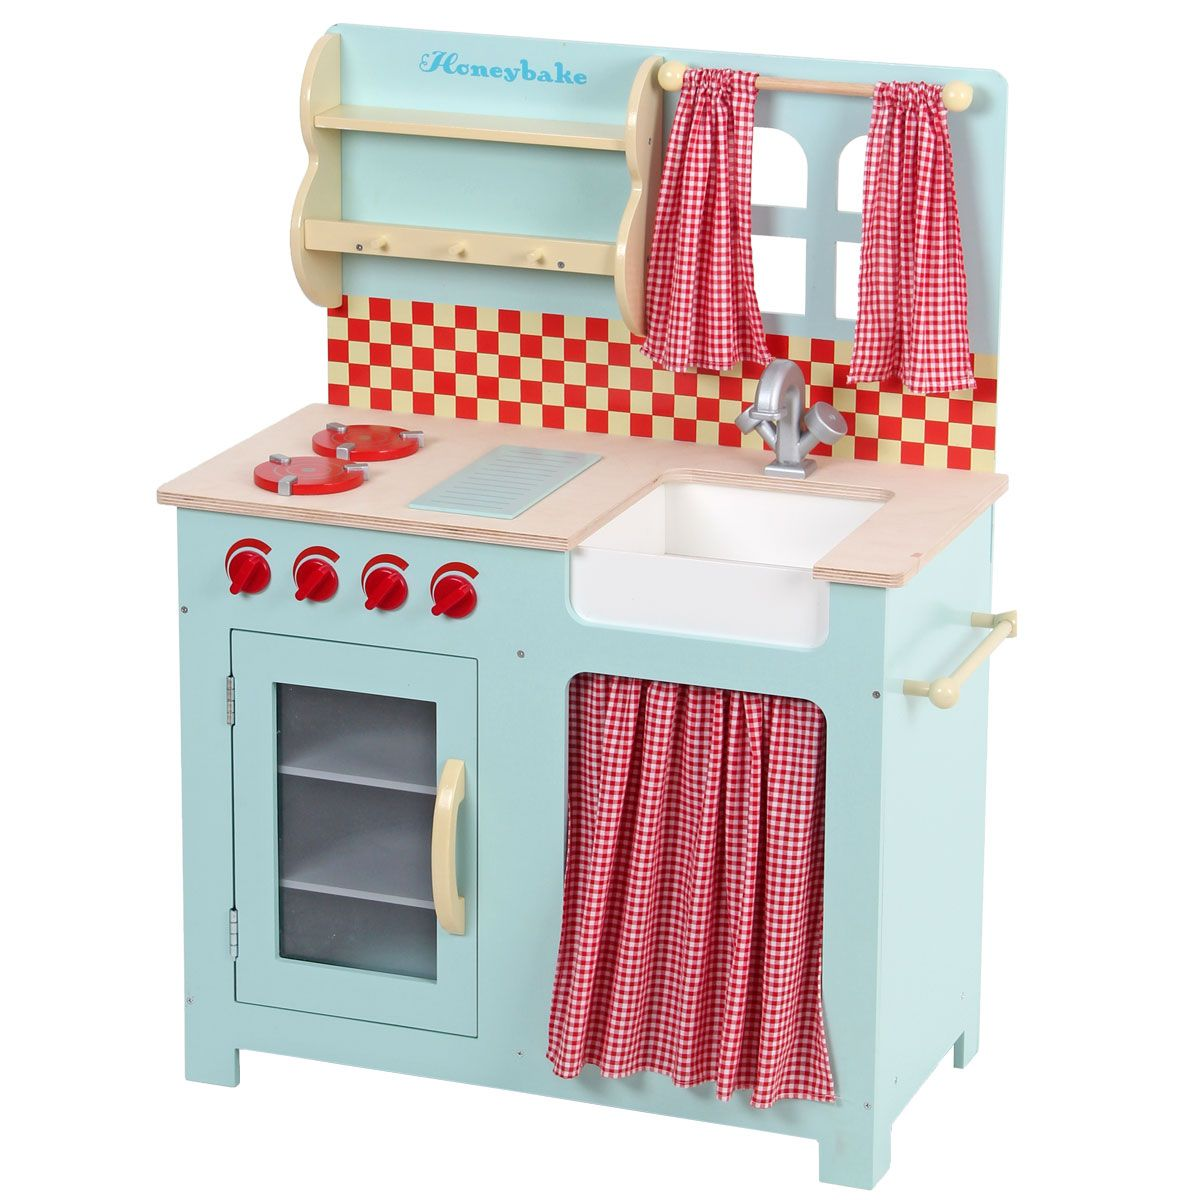 Le Toy Van Große Küche | Toy, Toy kitchen and Vans